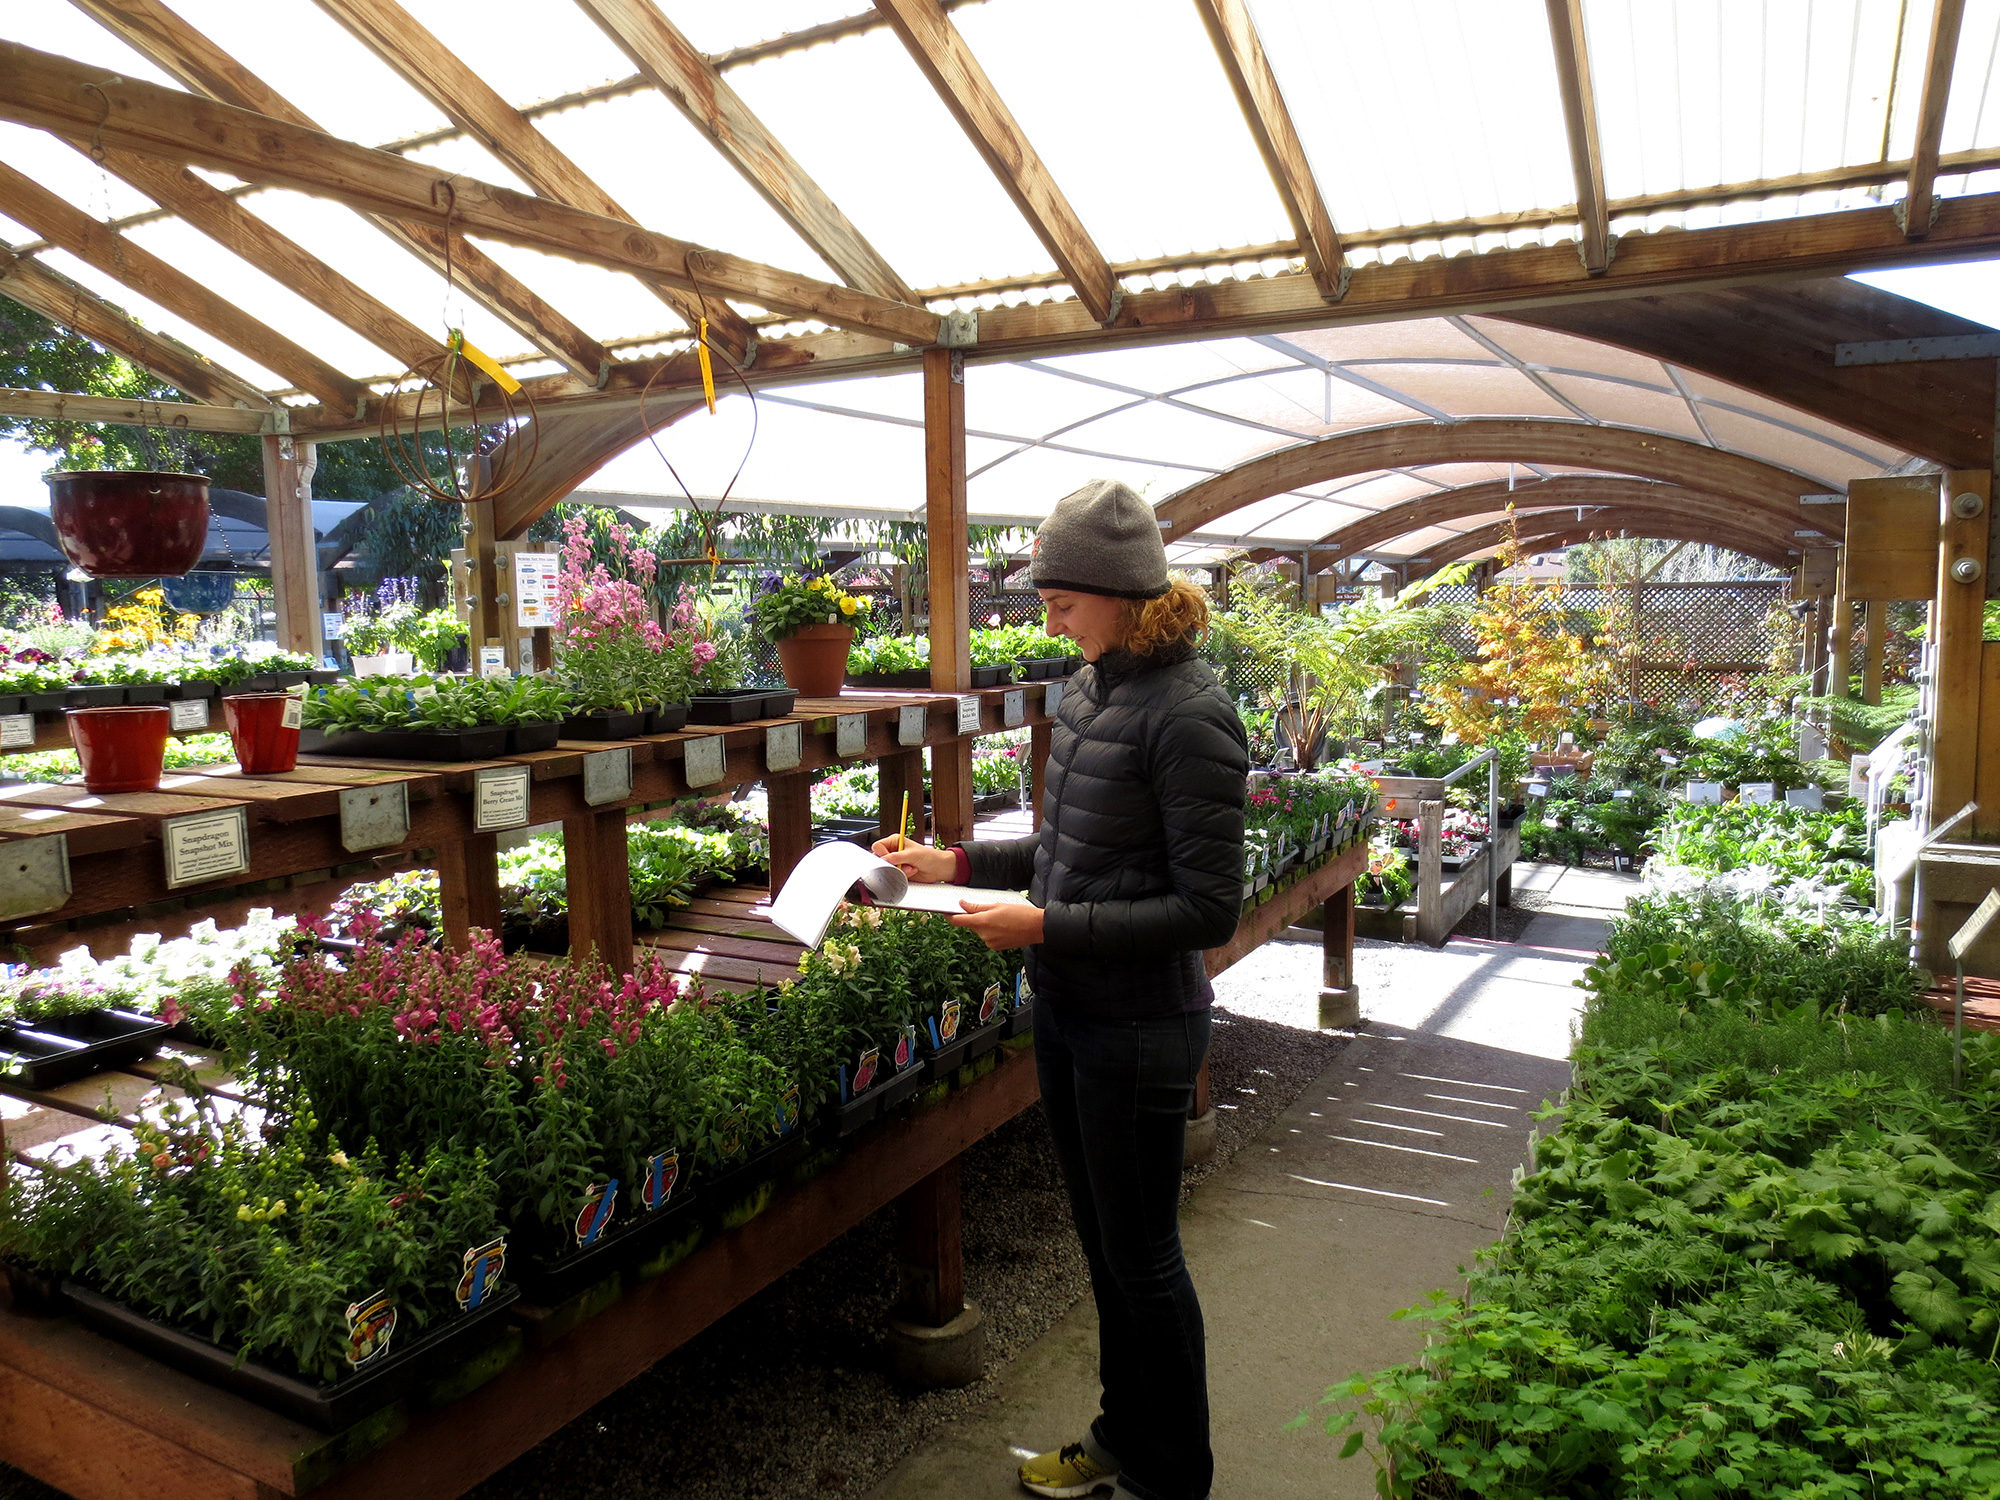 Berkeley Hort employee checking inventory by Helen Krayenhoff